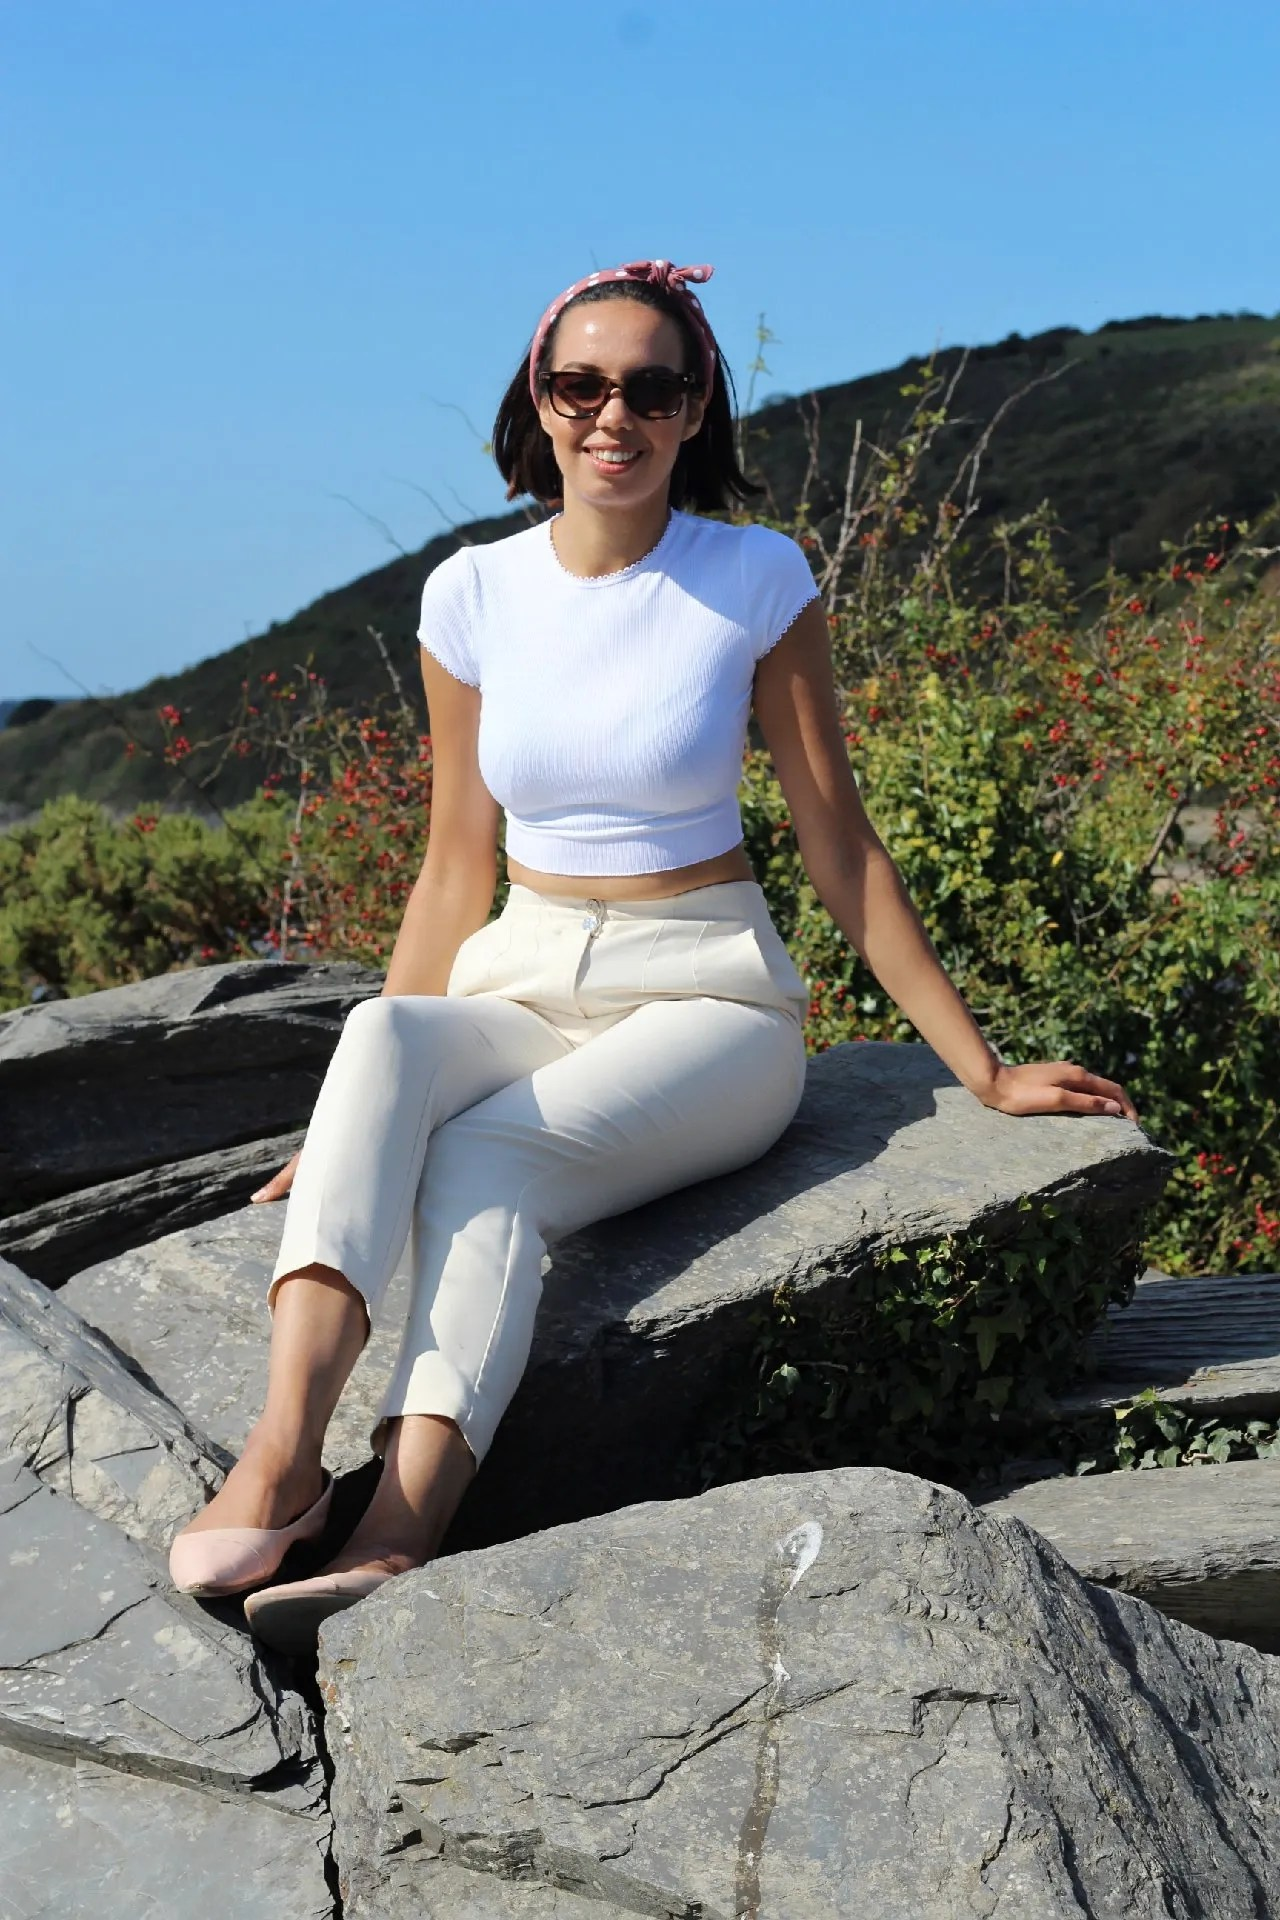 women's lifestyle blog - lifestyle blogs - The Style of Laura Jane